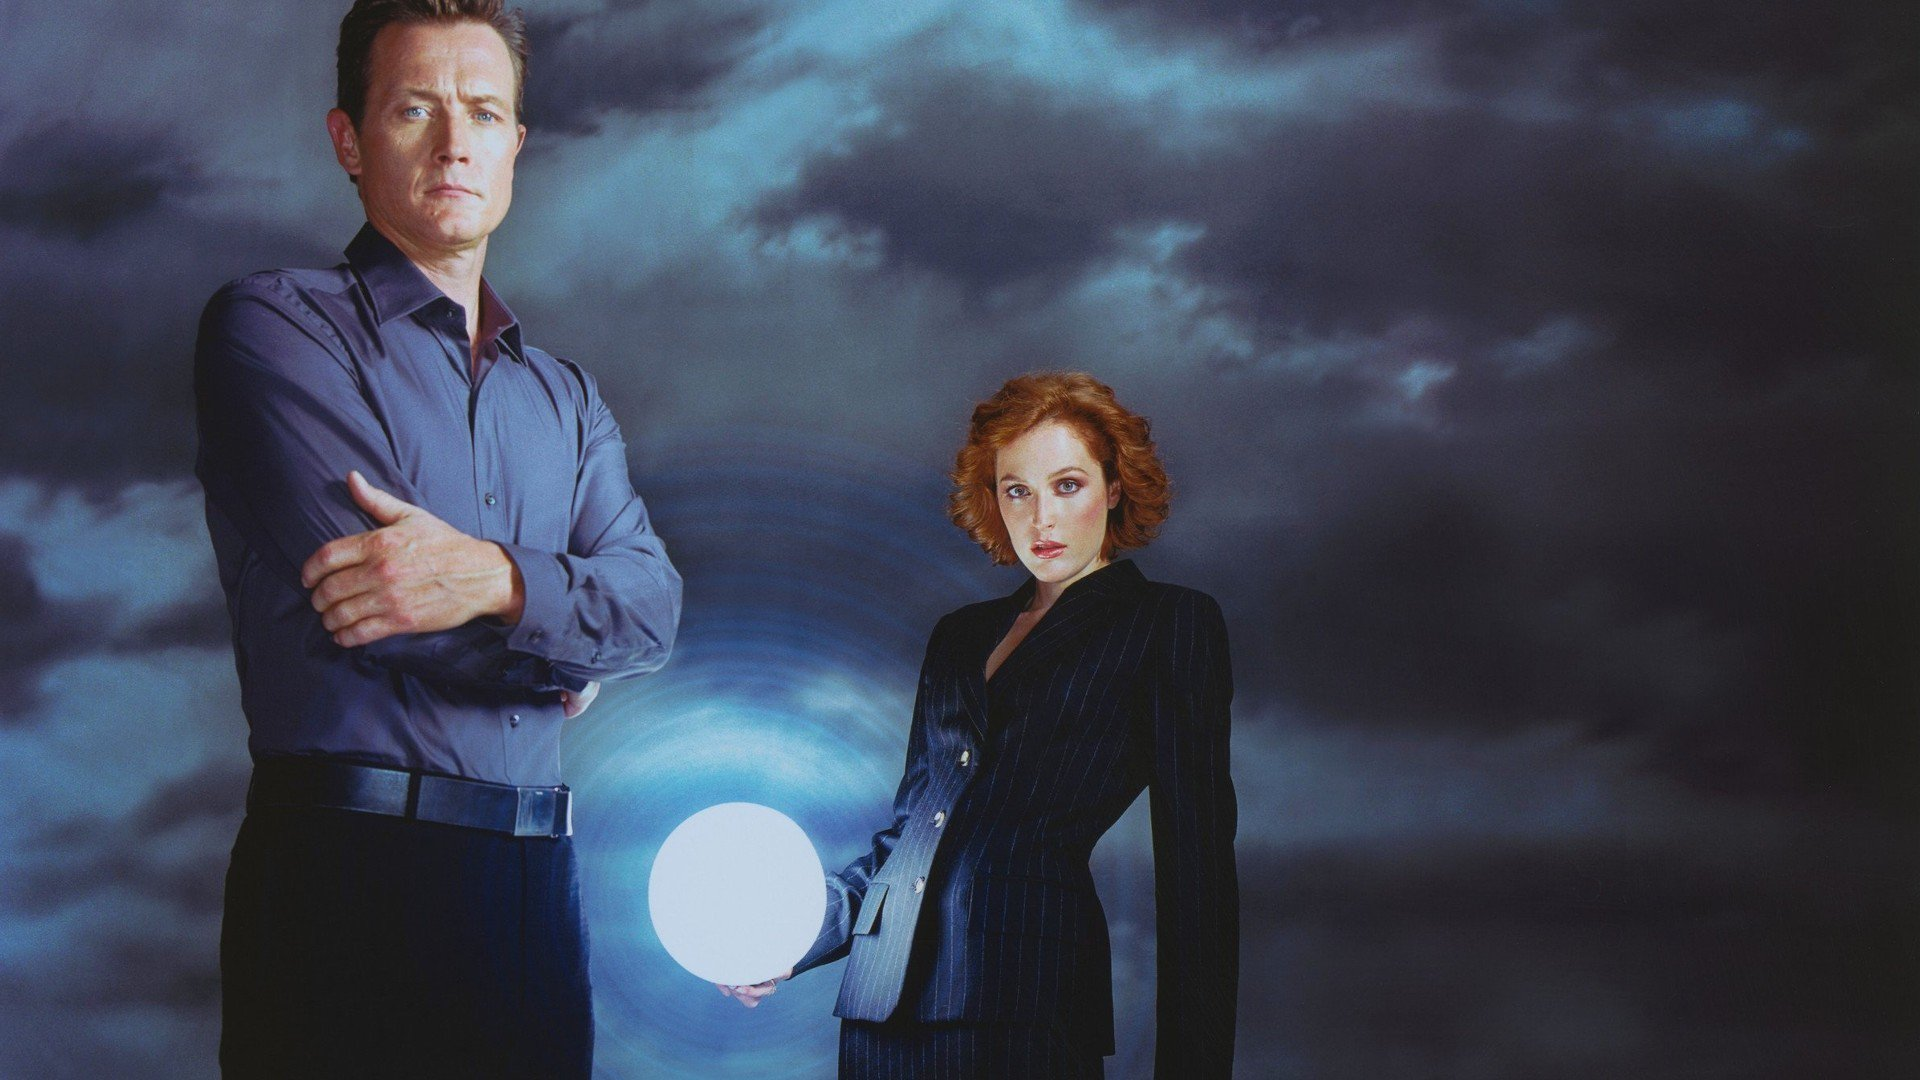 The X Files HD Wallpaper Background Image 1920x1080 ID 1920x1080